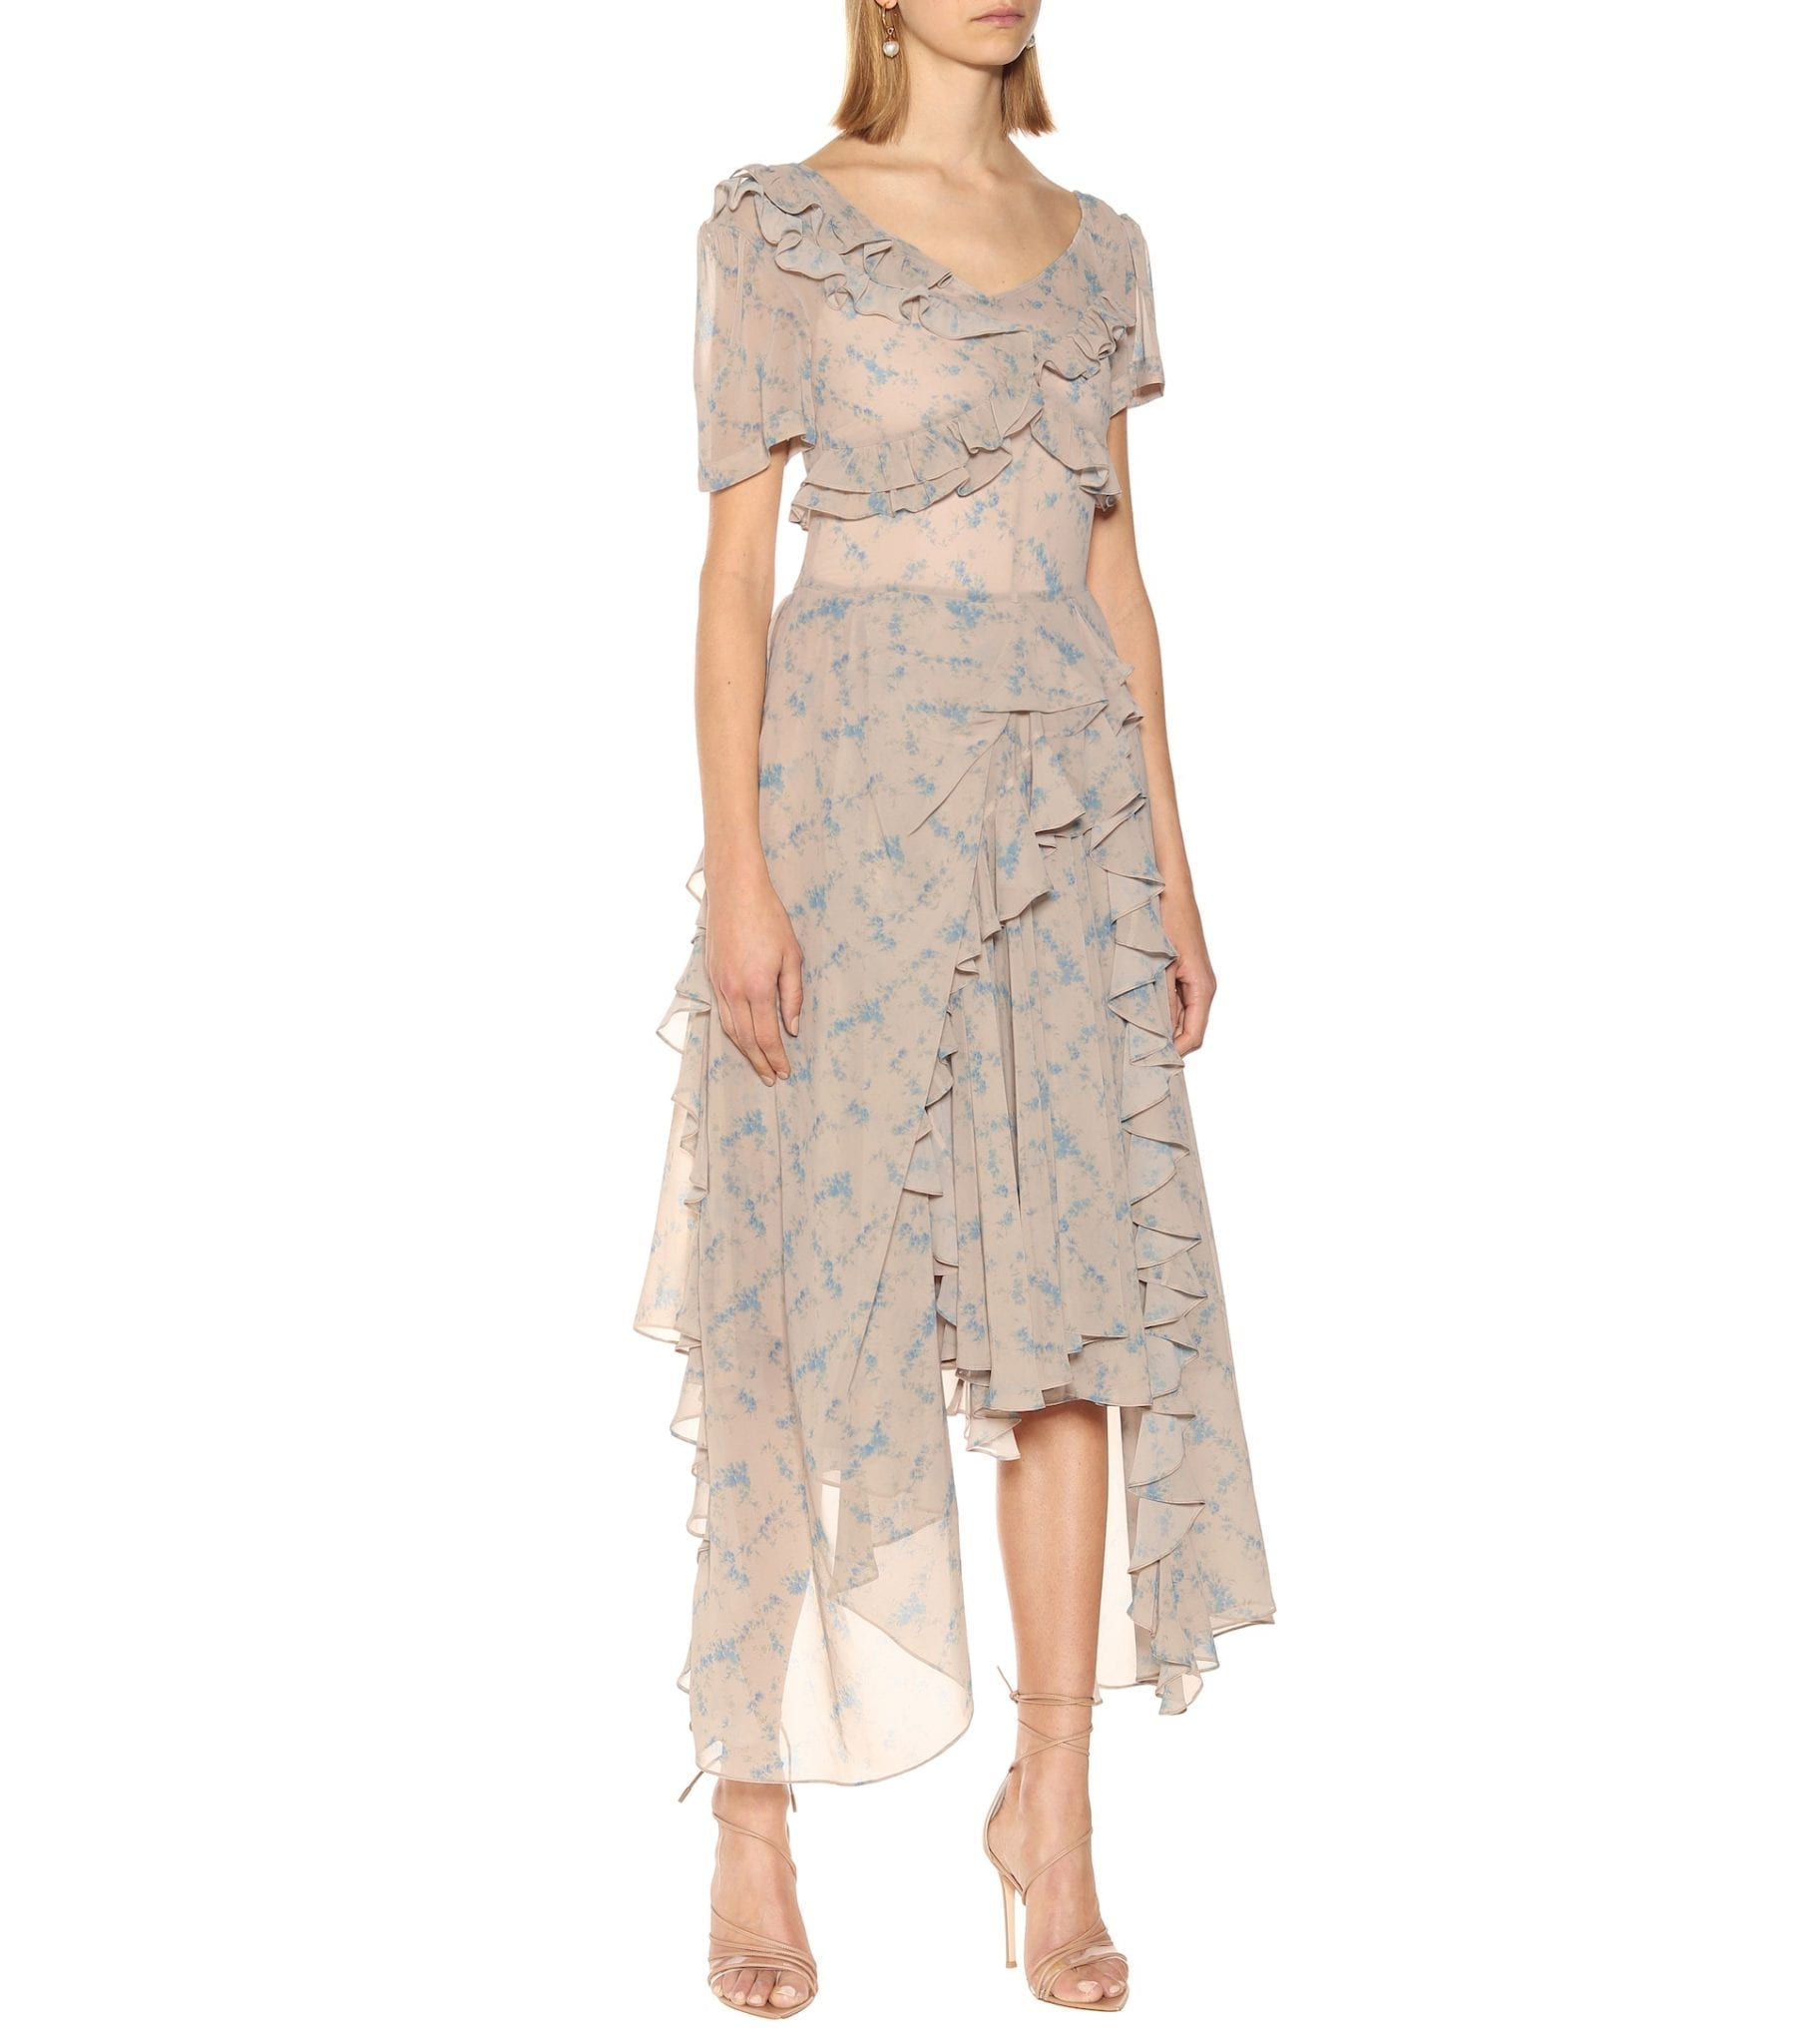 PREEN BY THORNTON BREGAZZI Quia Floral Stretch-crêpe Midi Dress